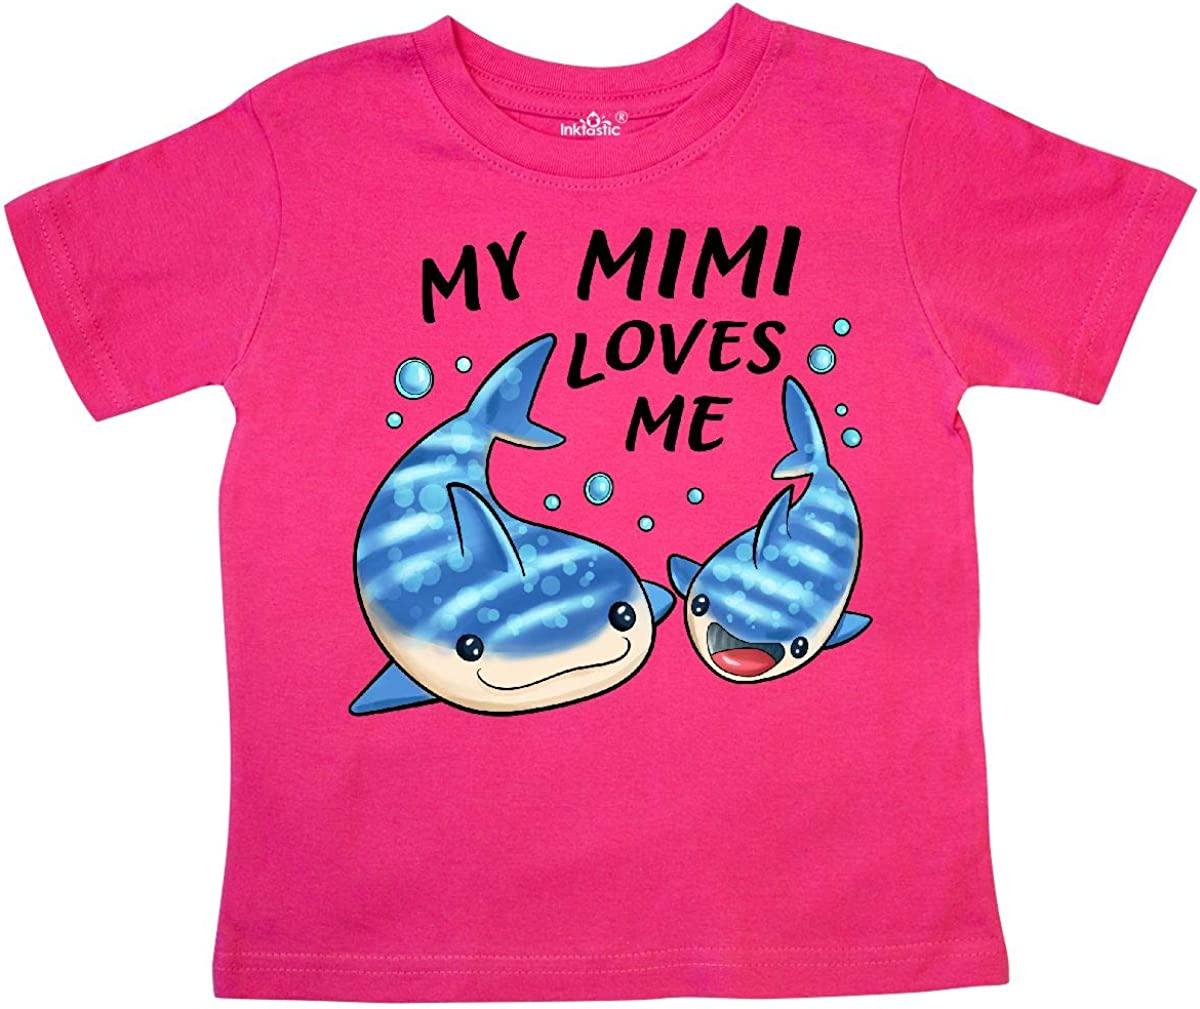 Toddler//Kids Long Sleeve T-Shirt Im Going to Love Sharks When I Grow Up Just Like My Mimi